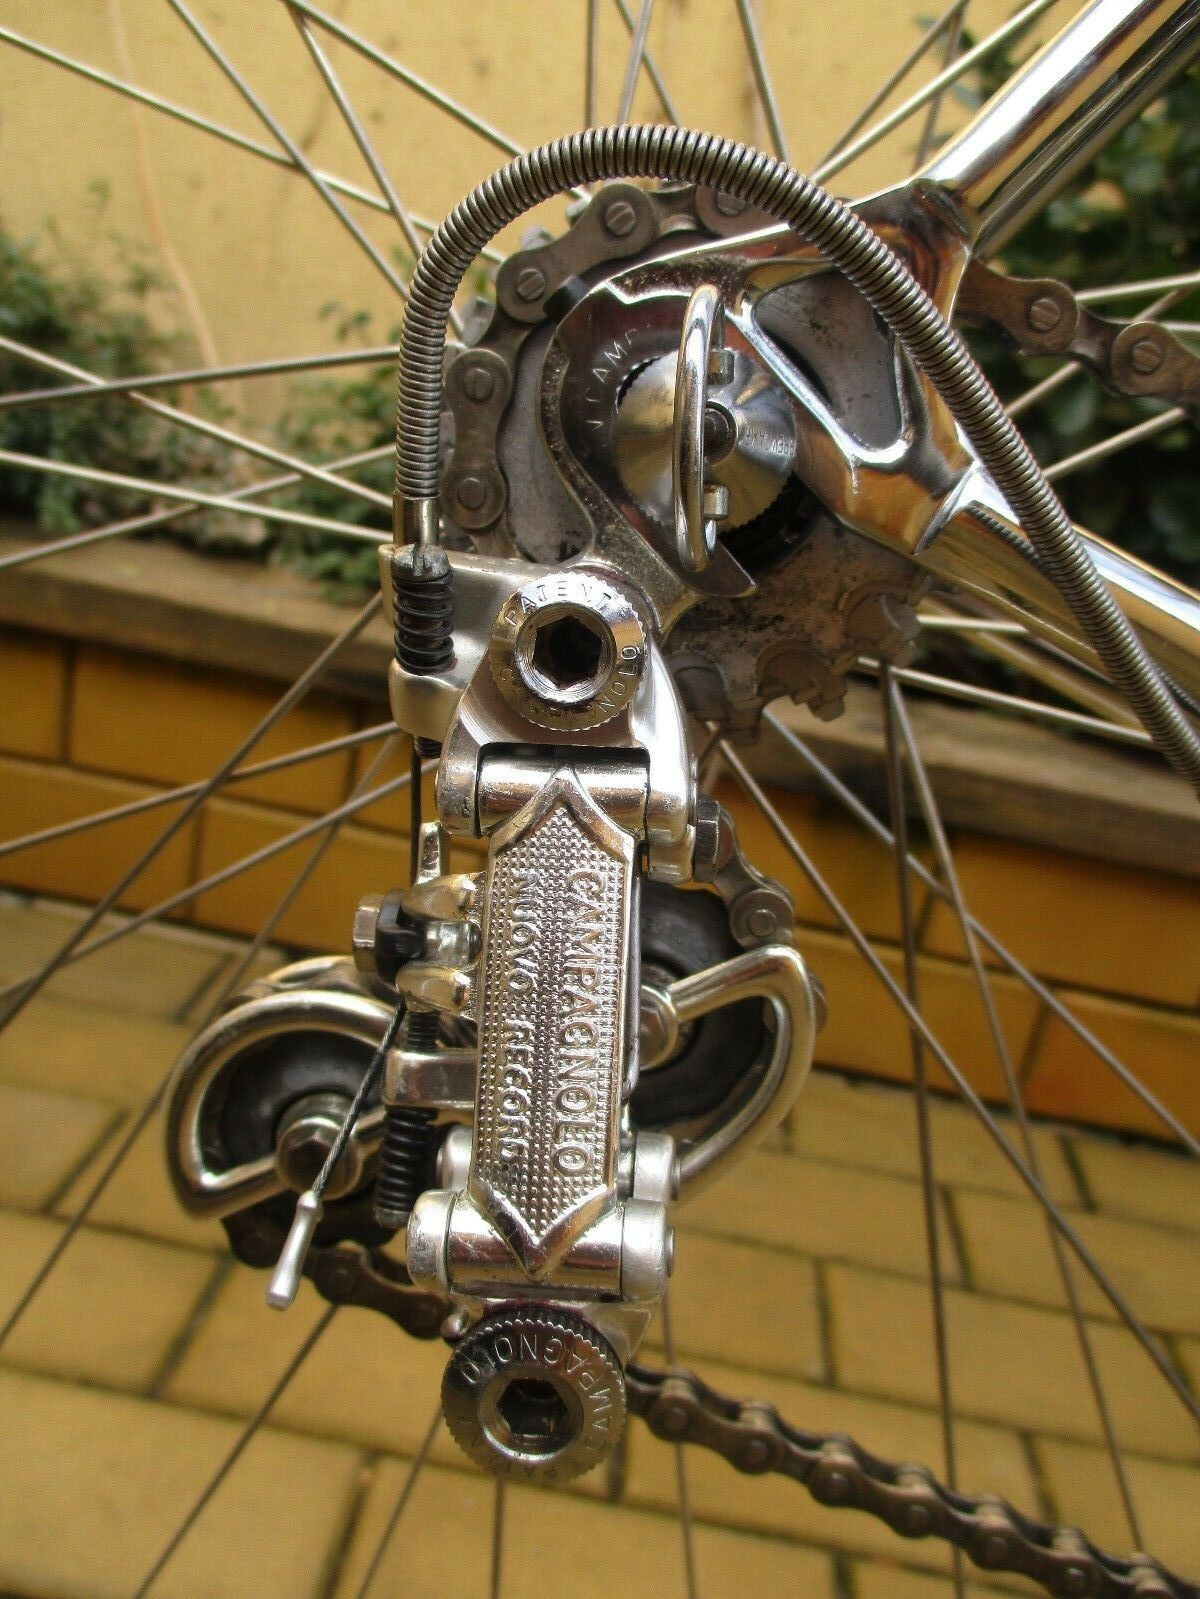 Vintage bicycle Krapf-Pantographed - Campagnolo Record   here has the latest